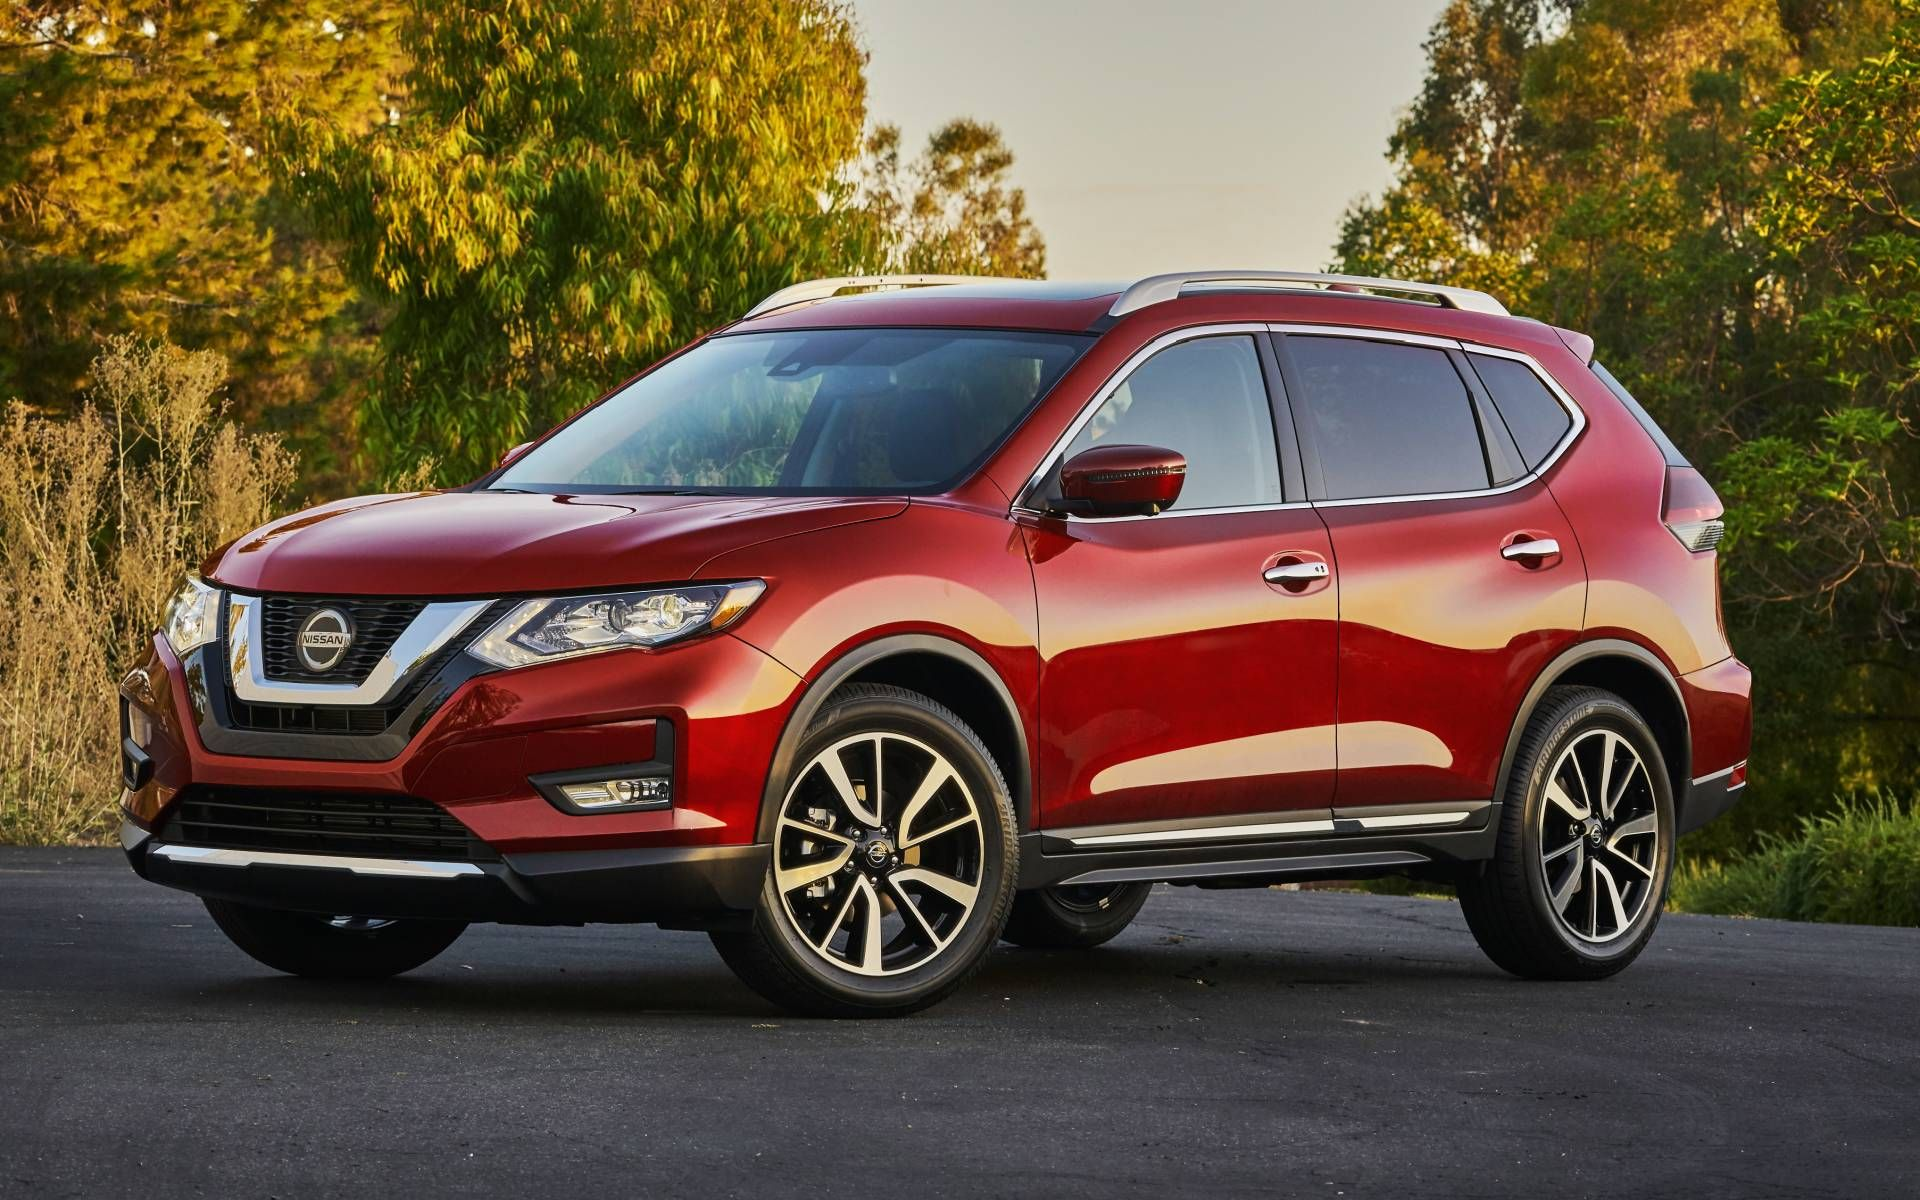 Pin By Shanetrex On Automobile Neuve 2019 A 2021 In 2020 Nissan Rogue Nissan Nissan Cars